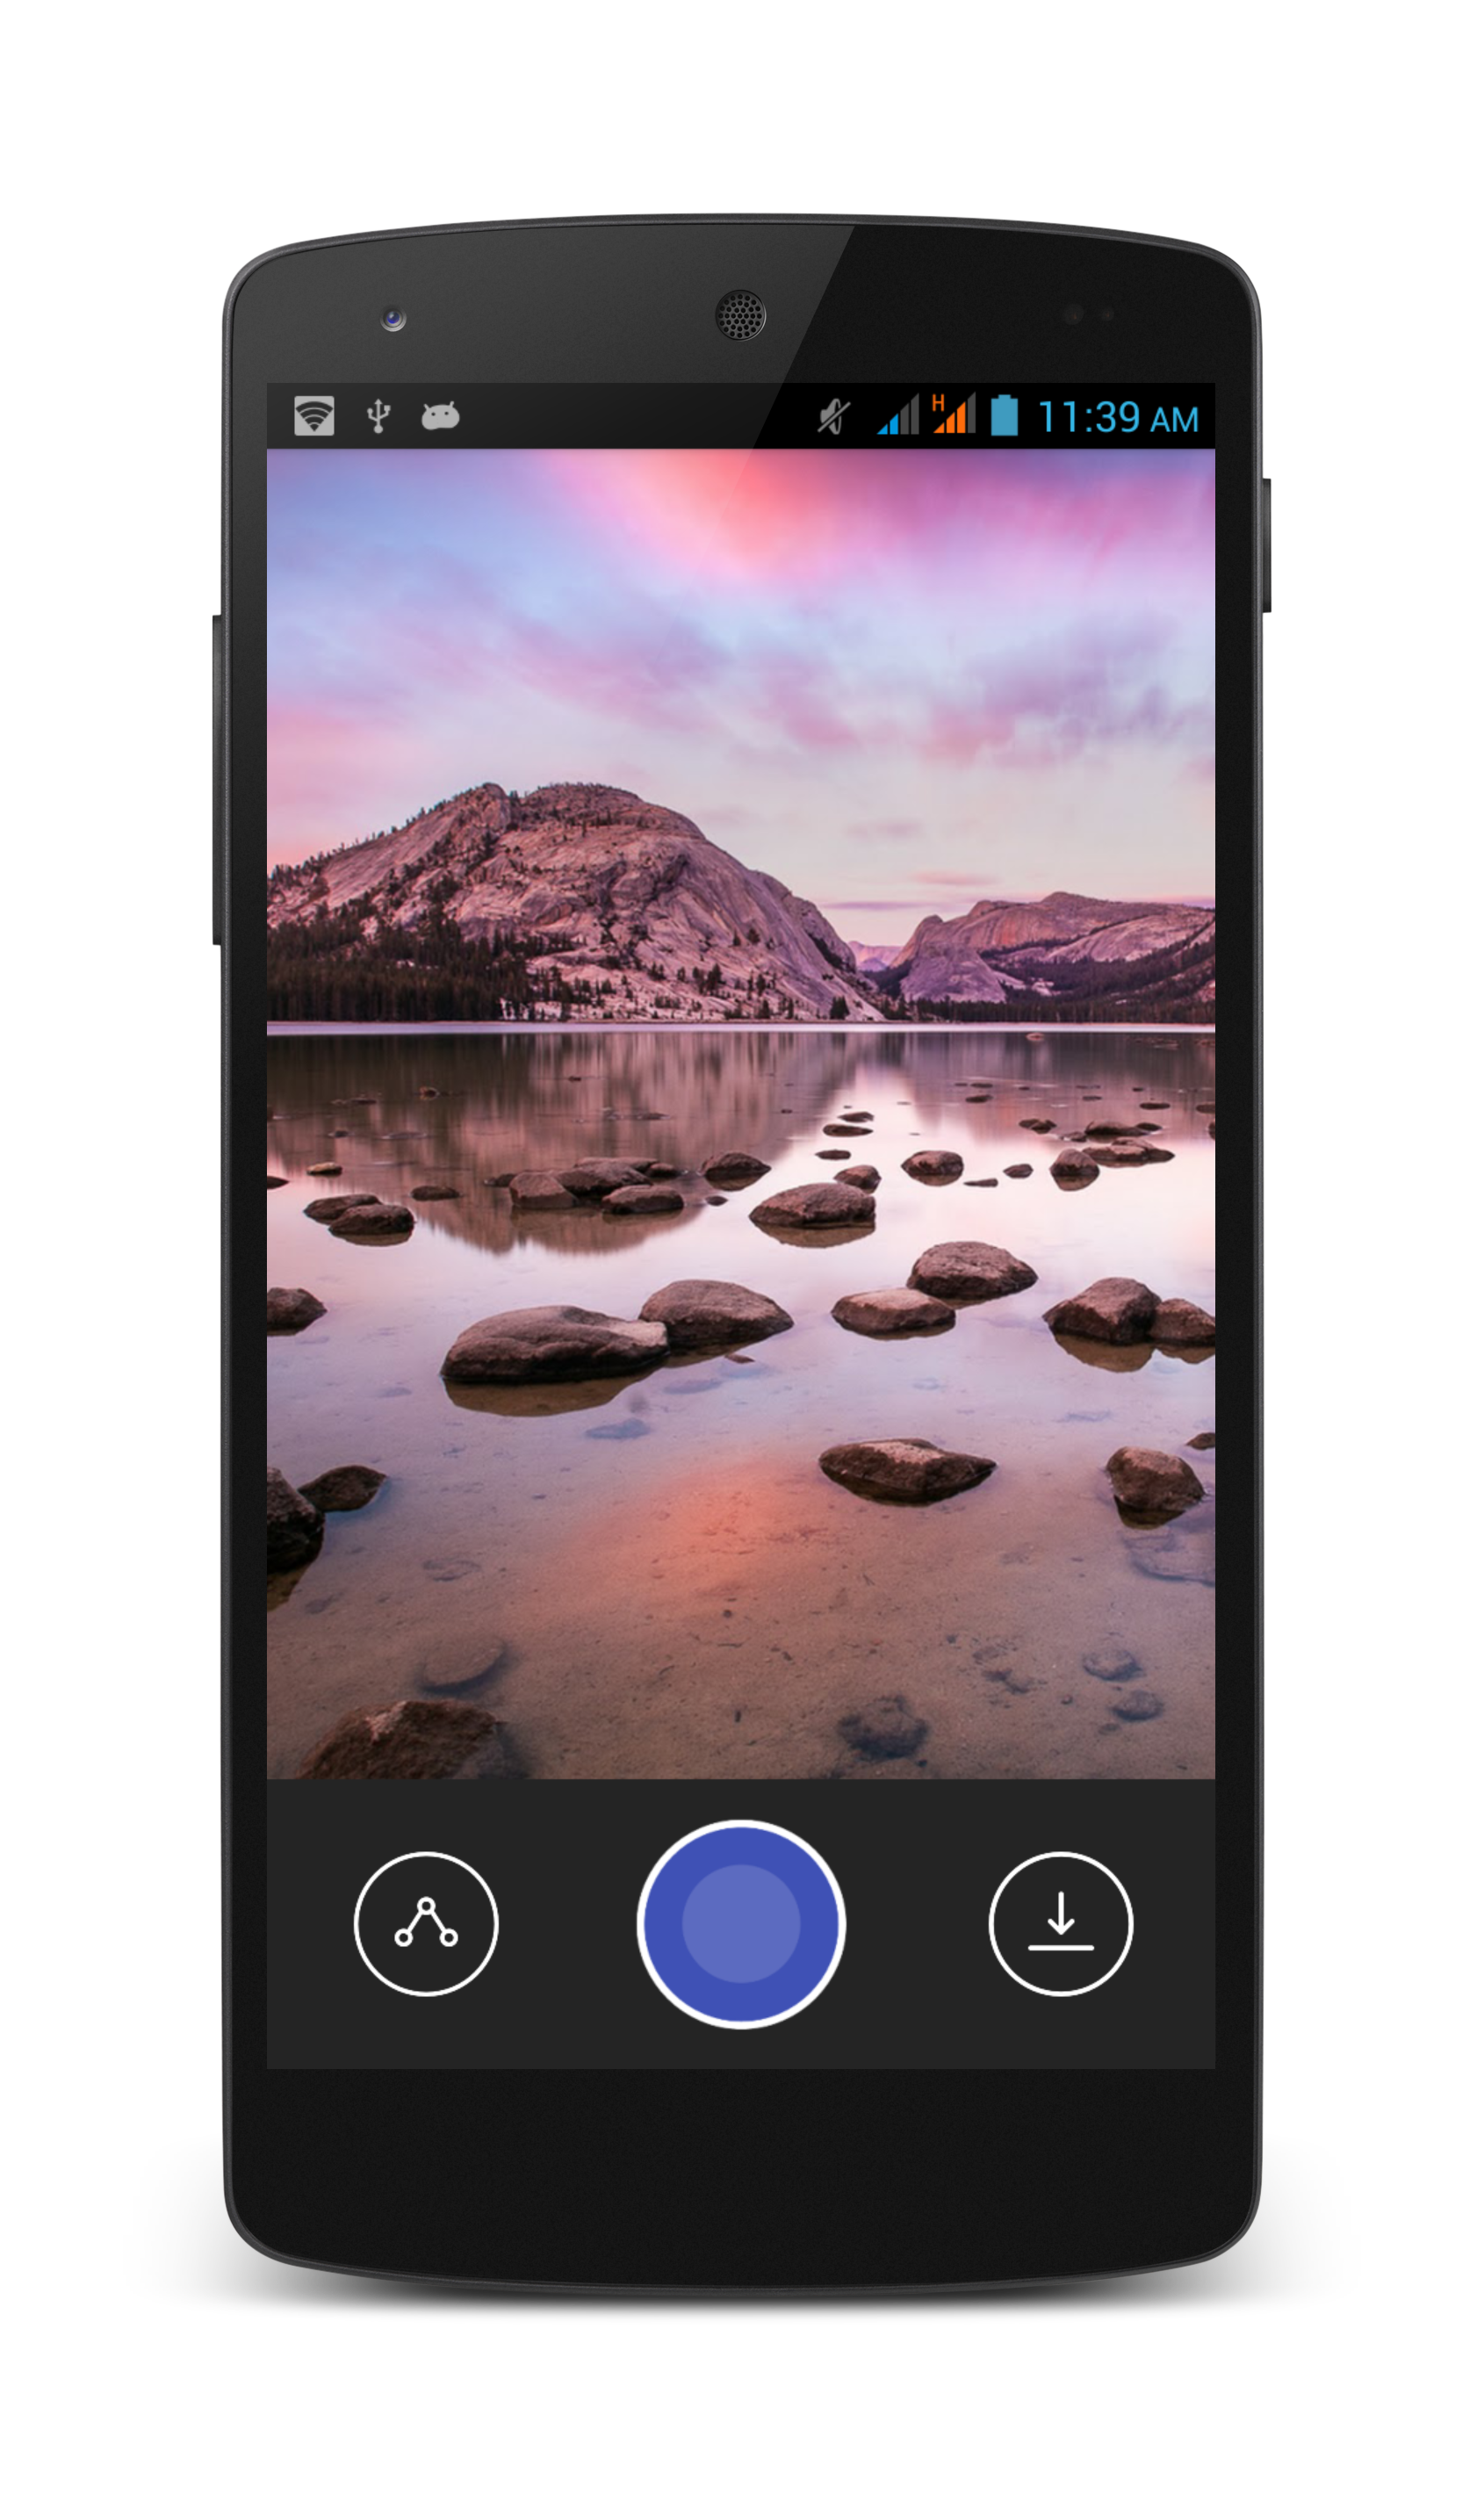 Download official beautiful 680 chromecast wallpapers for your android - Chromecast backgrounds download ...